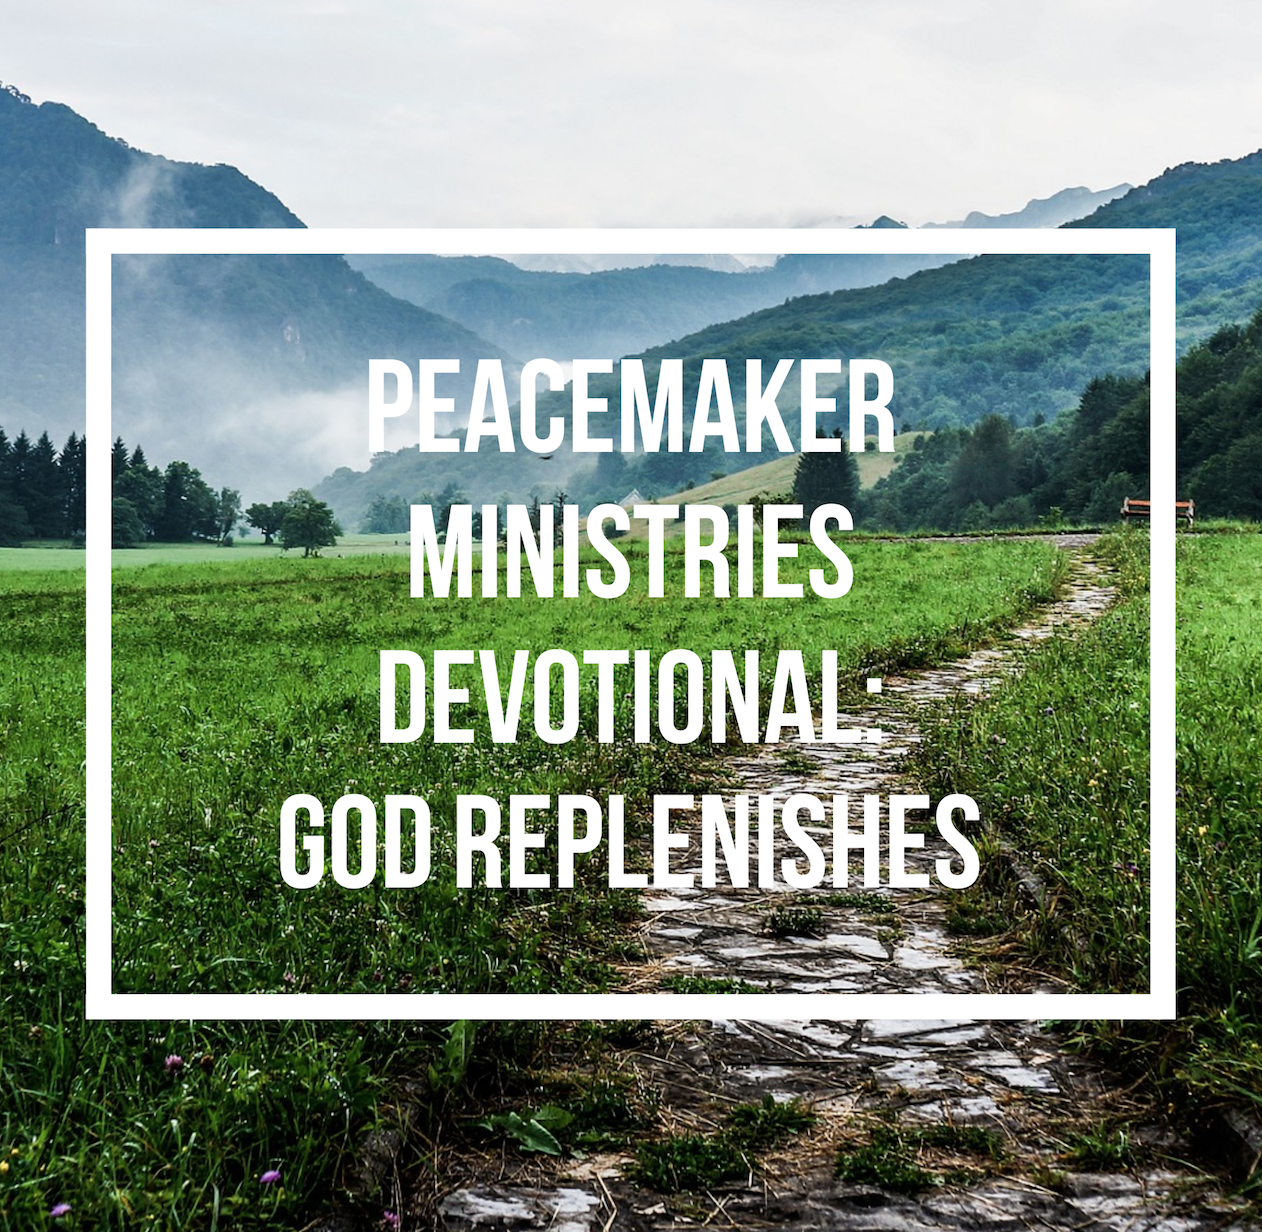 Peacemaker Ministries Devotional: God Replenishes